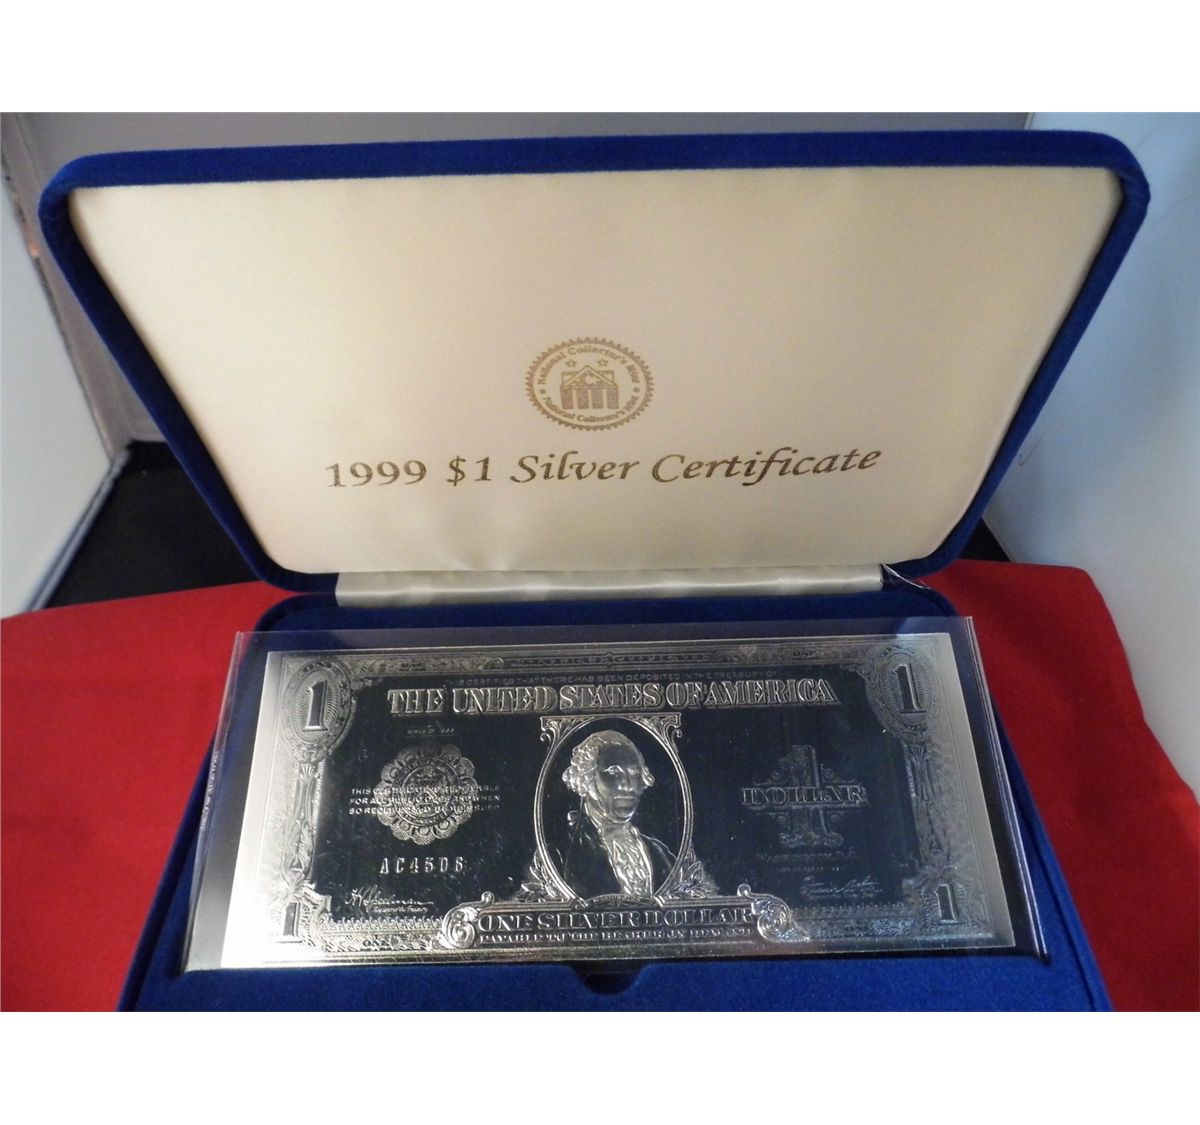 National collectors mint 1999 1 silver certificate note national collectors mint 1999 1 silver certificate note perimeter 21 in content us legal xflitez Gallery